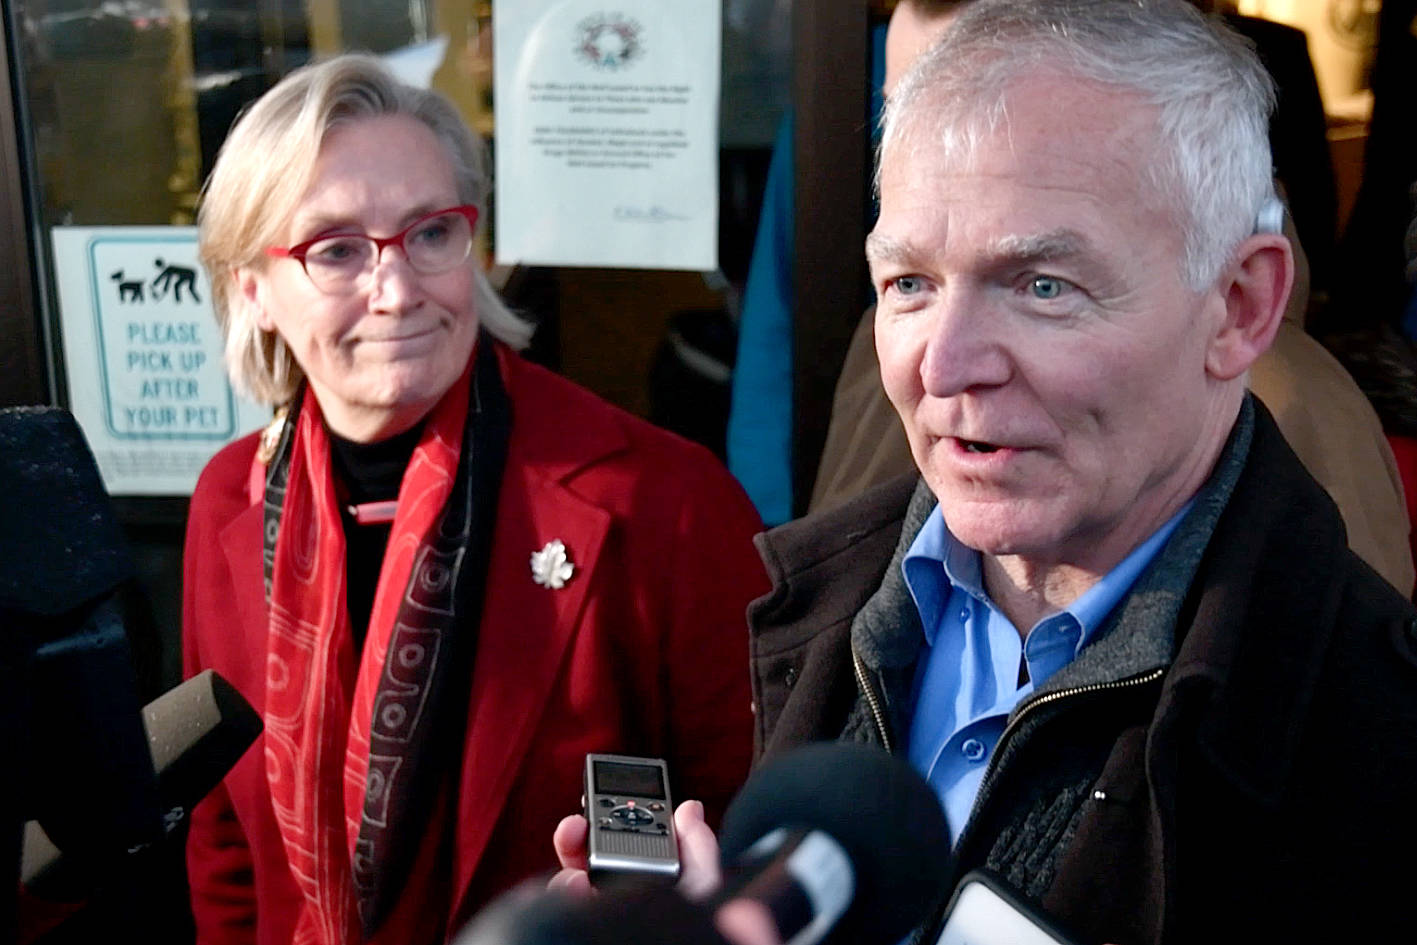 B.C. Indigenous Relations Minister Scott Fraser and Crown-Indigenous Relations Minister Carolyn Bennett speak briefly to the press following Thursday's discussions with the Wet'suwet'en hereditary chiefs. (Quinn Bender photo)